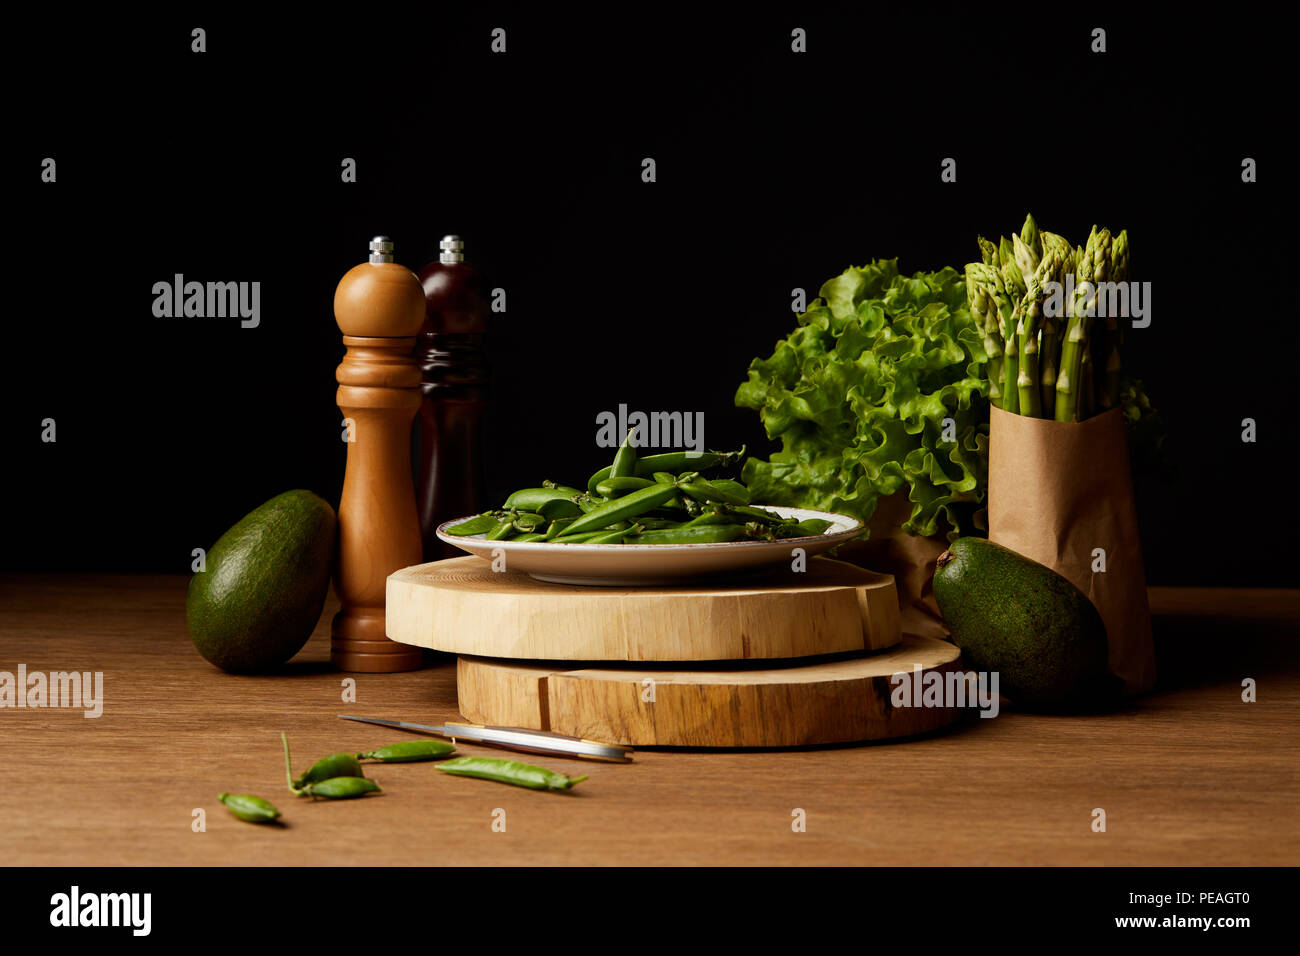 row green vegetables on wooden surface - Stock Image